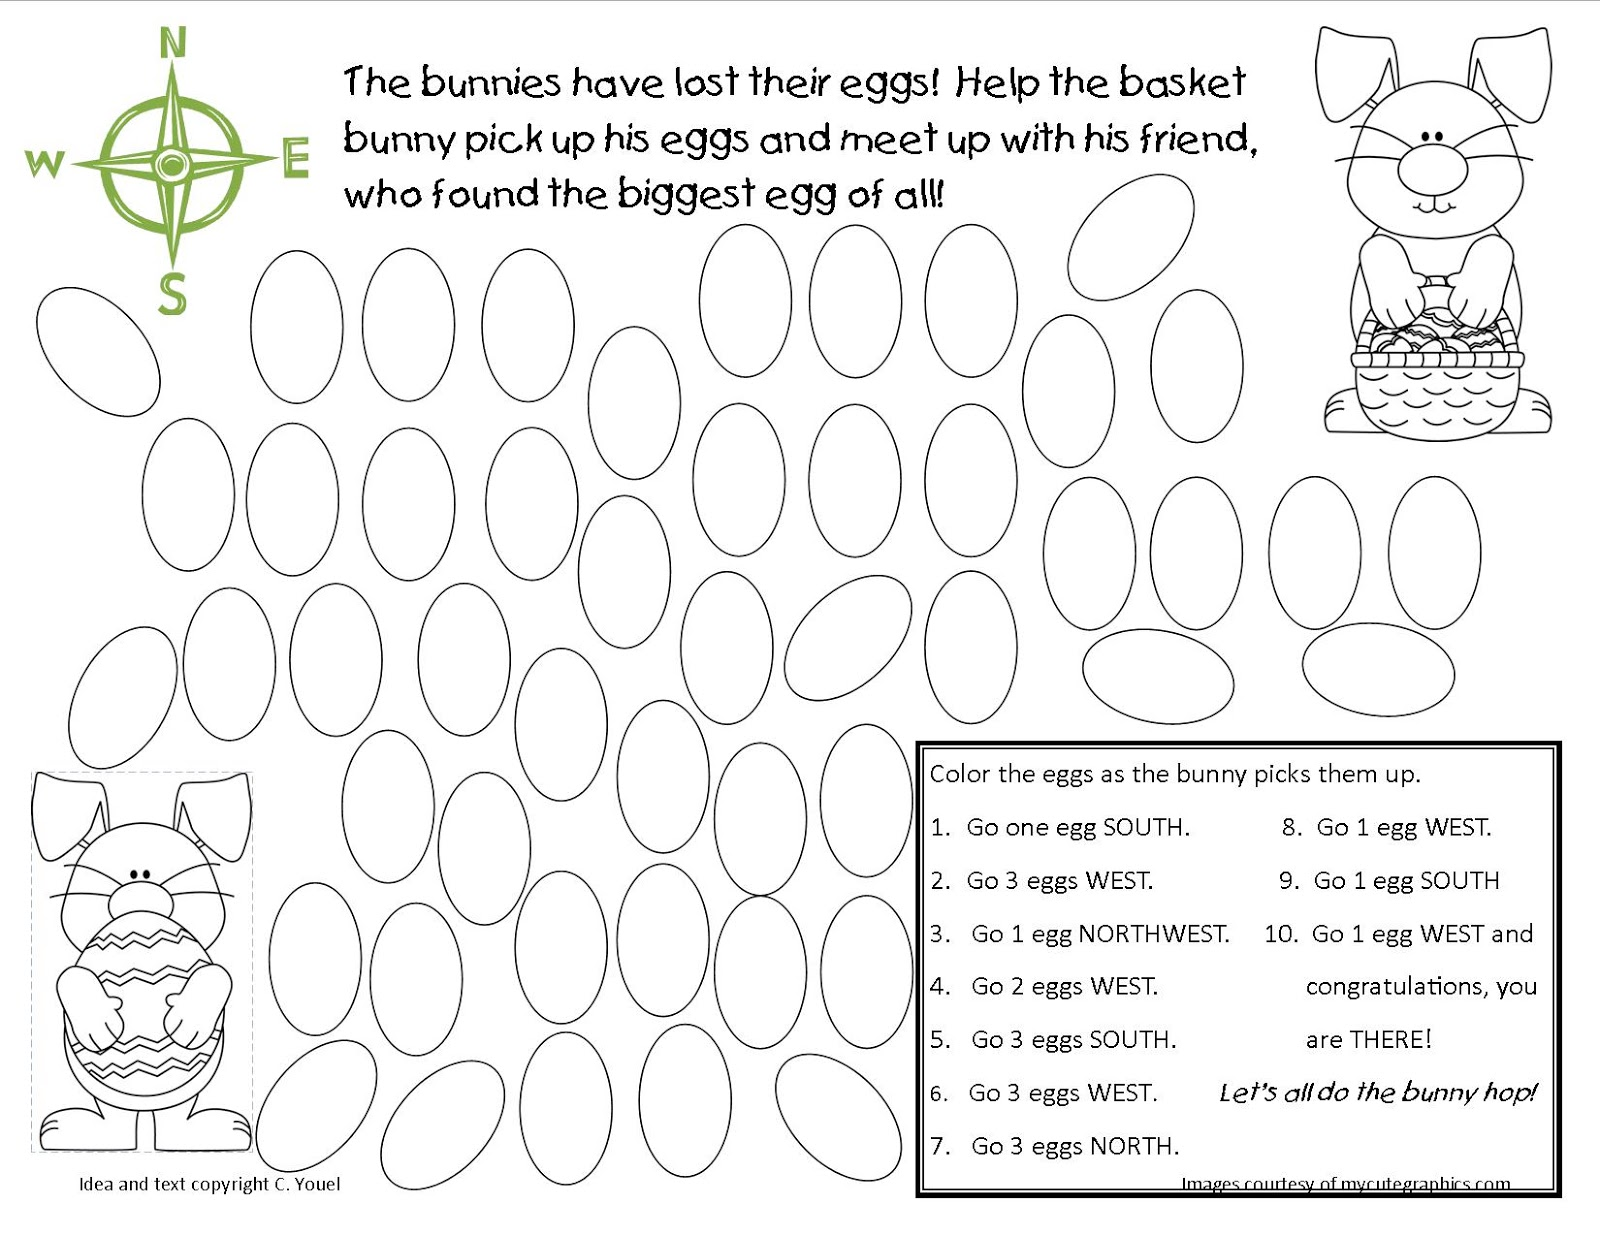 Worksheets Cardinal Directions Worksheet worksheet cardinal directions mytourvn study what does the fox read march 2013 monday 25 2013